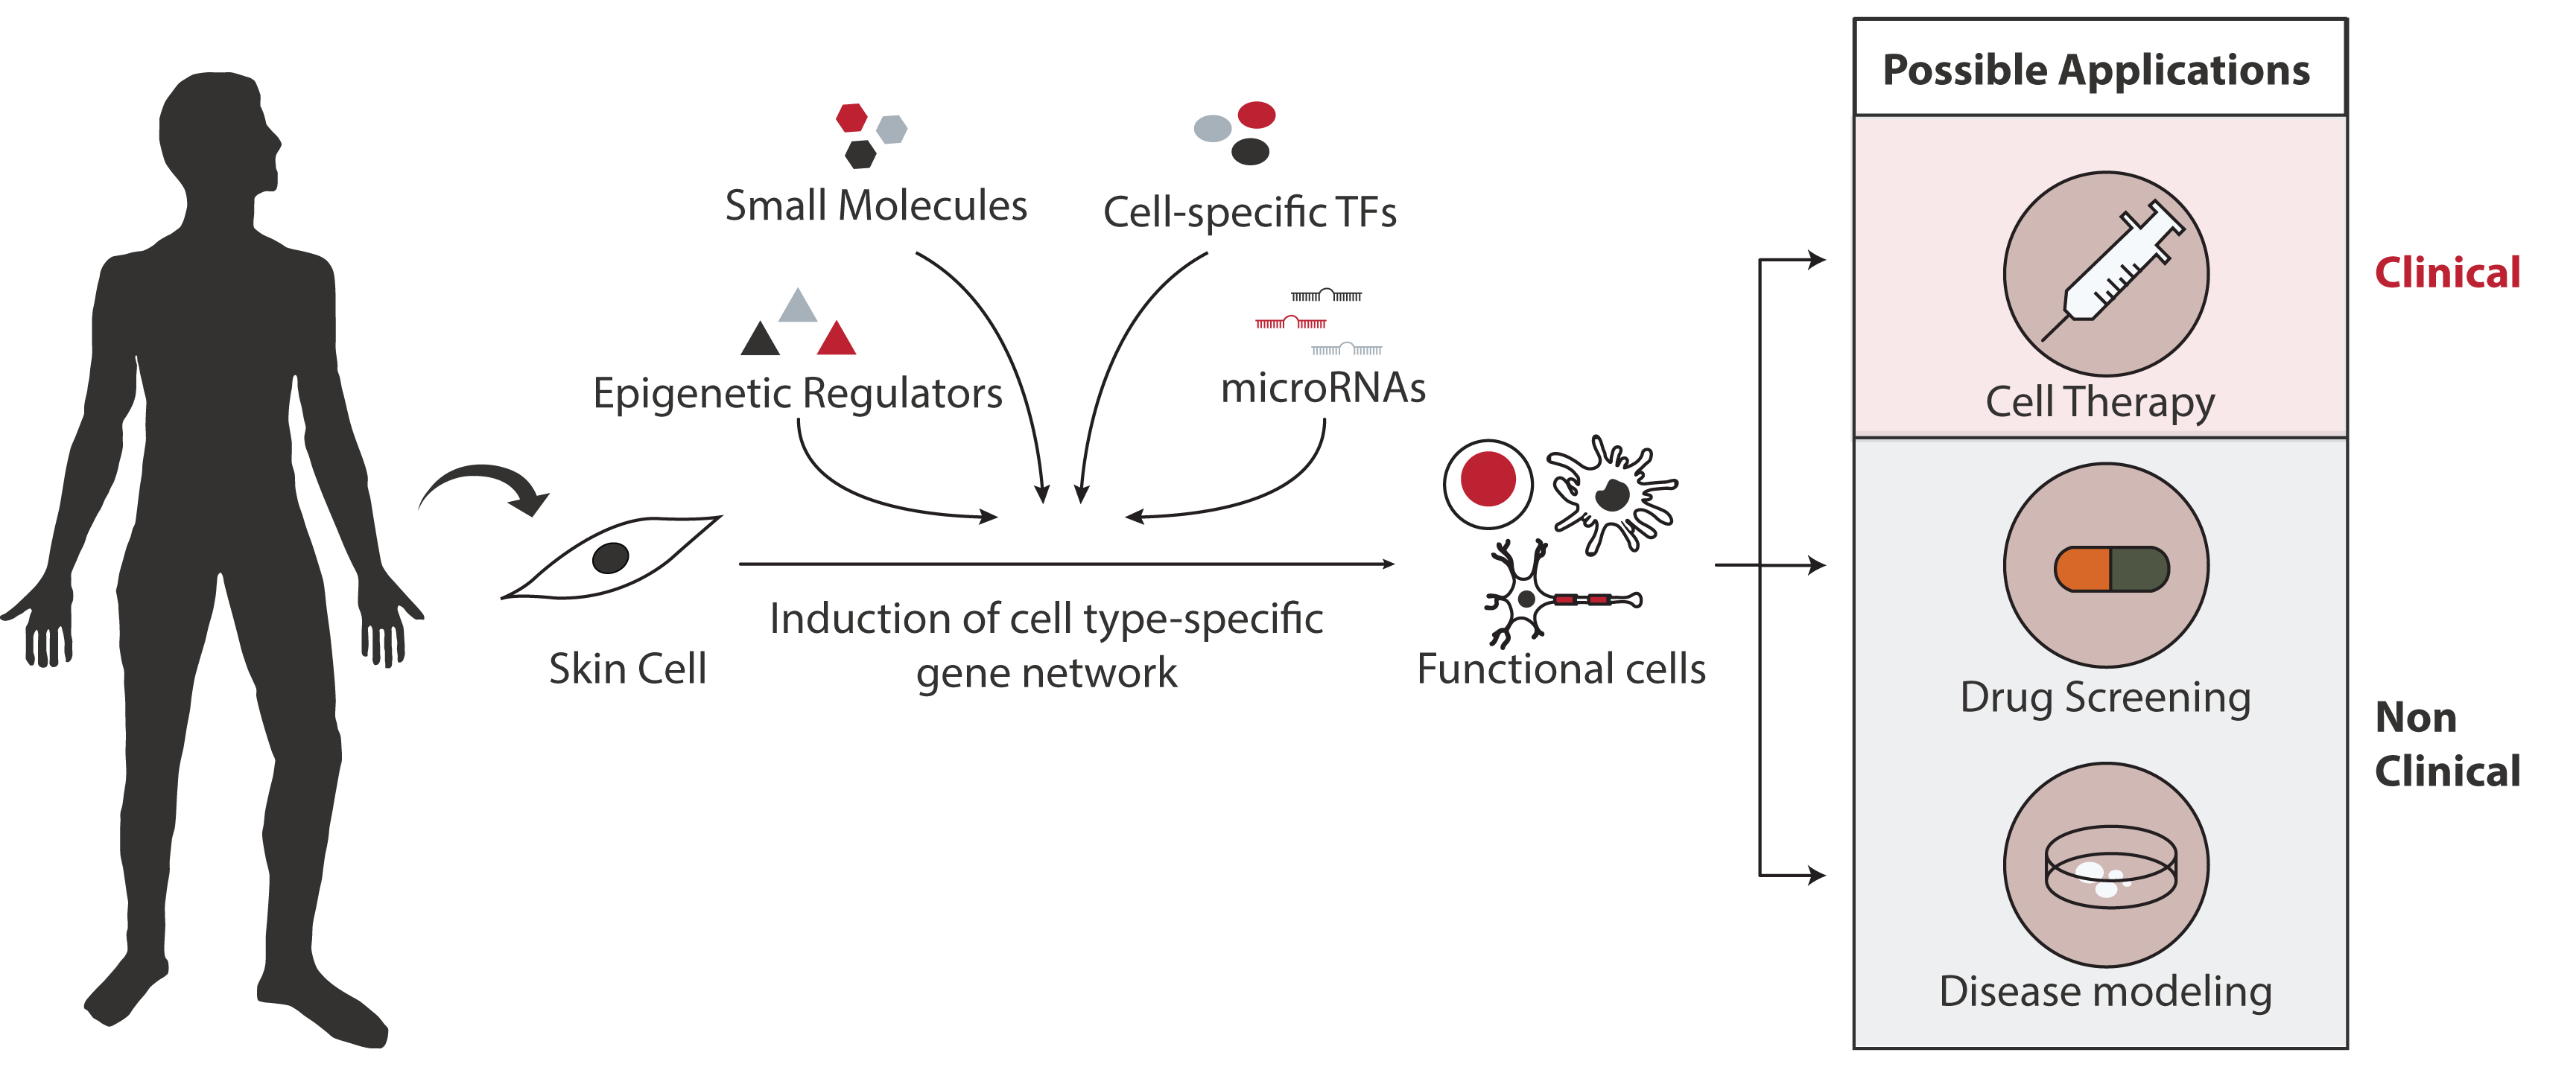 Direct cell reprogramming blood reprogramming technologies instead of making induced pluripotent stem cells from a patients adult cells and differentiating them to other cell types over an extended period of time pooptronica